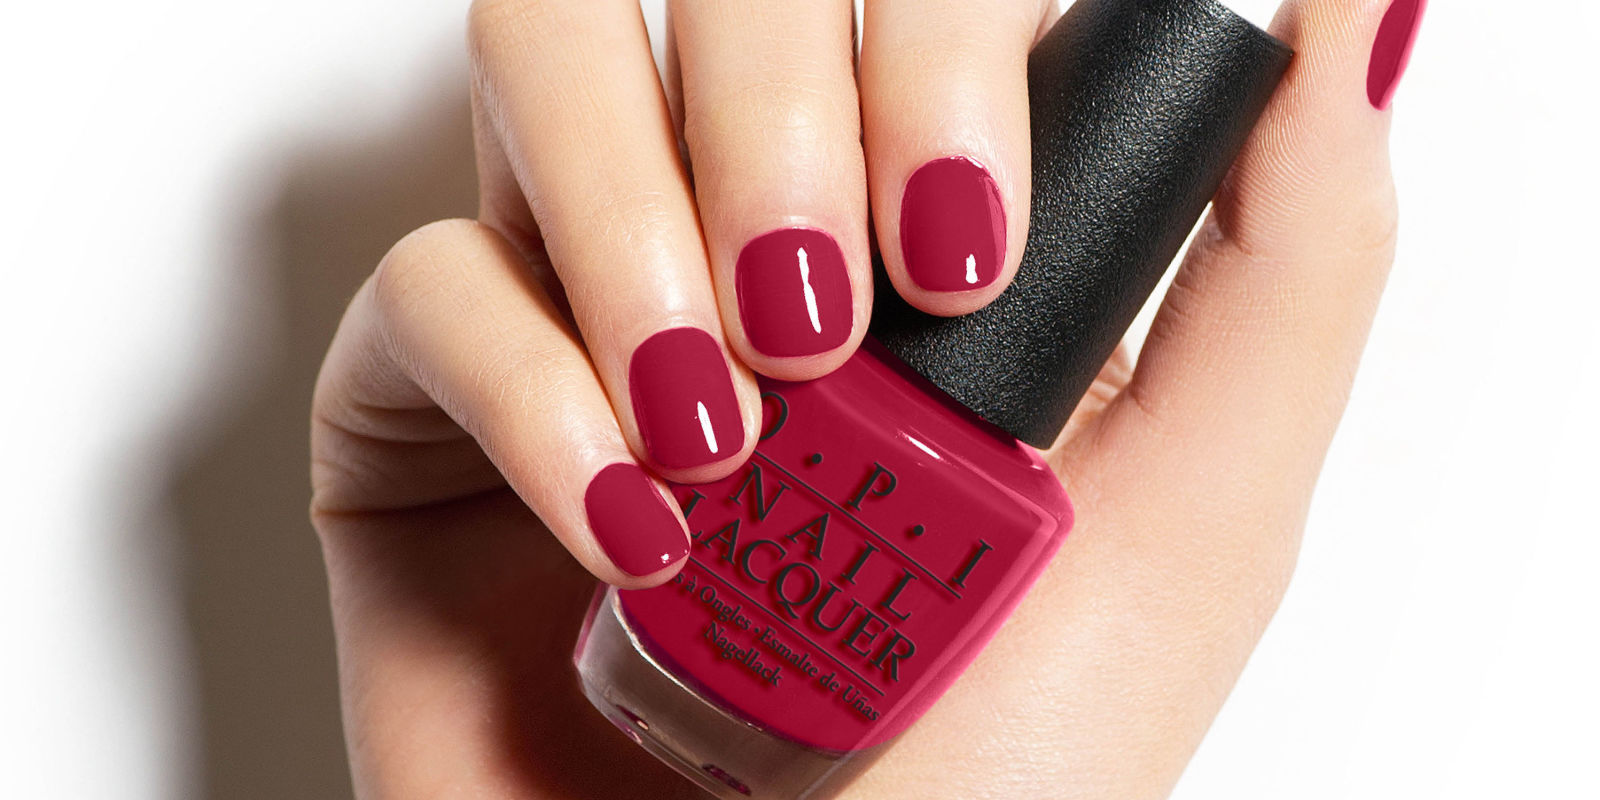 Awesome Nail Polish Trends Spring 2017 Images - Nail Art Ideas ...